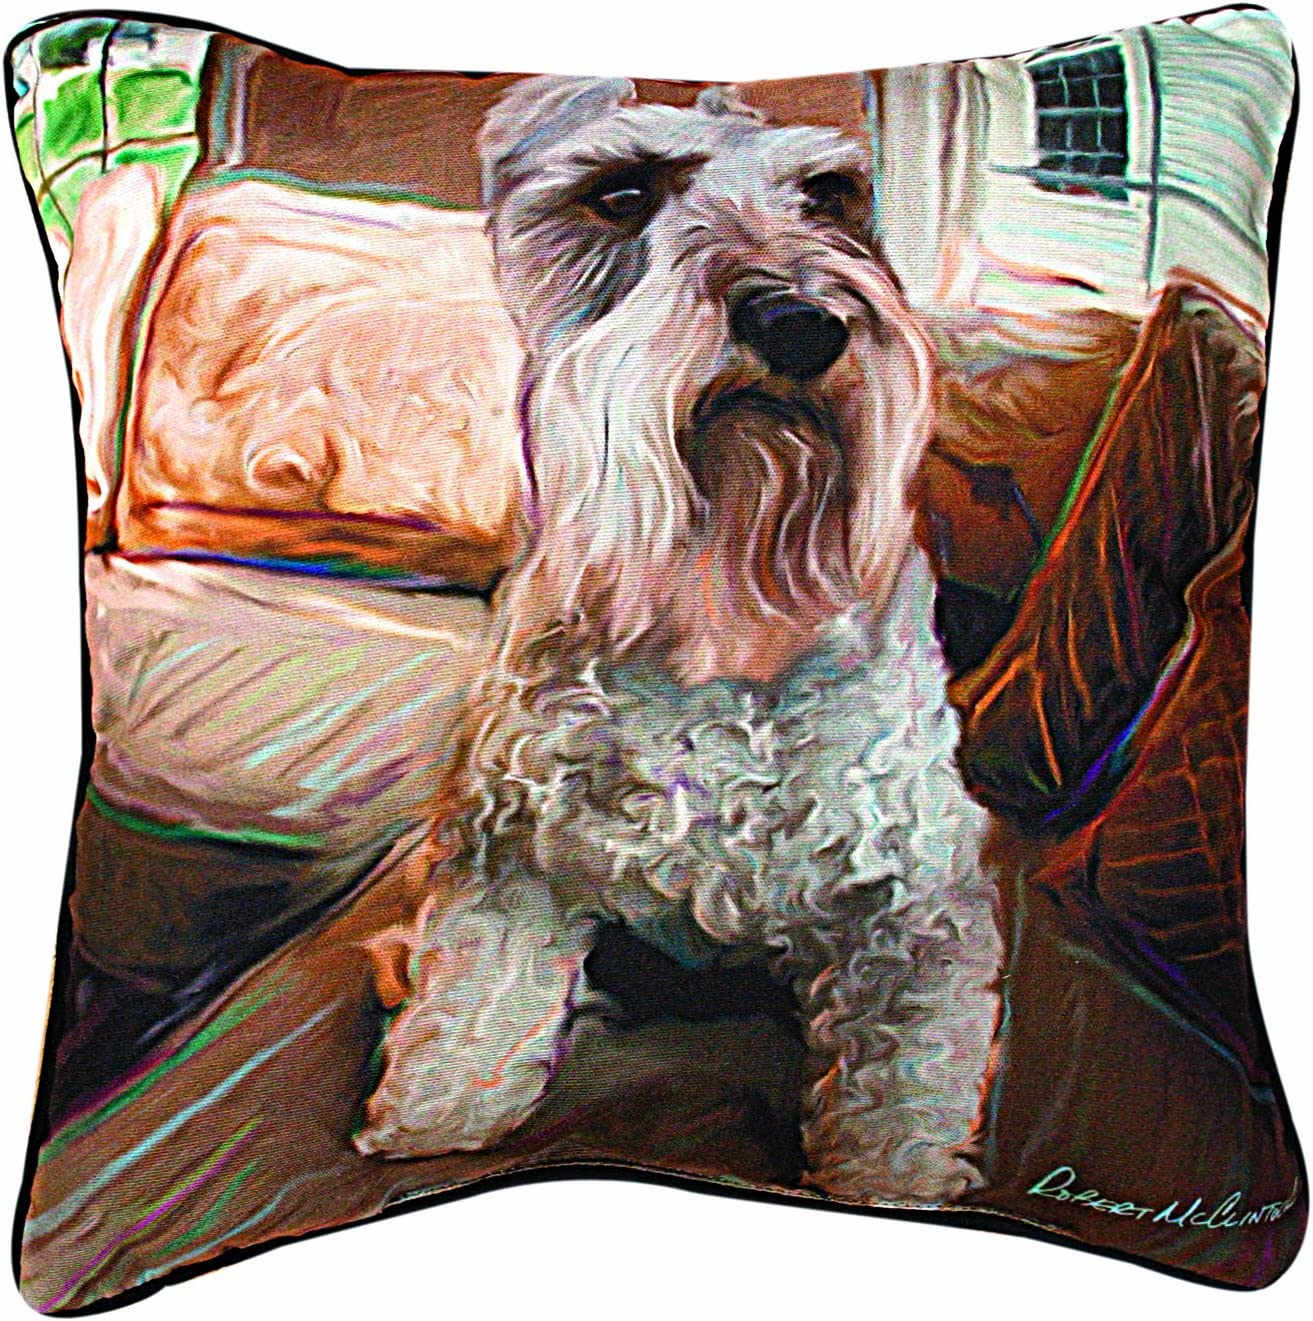 Manual Schnauzer Paws and Whiskers Decorative Square Pillow, 18-Inch